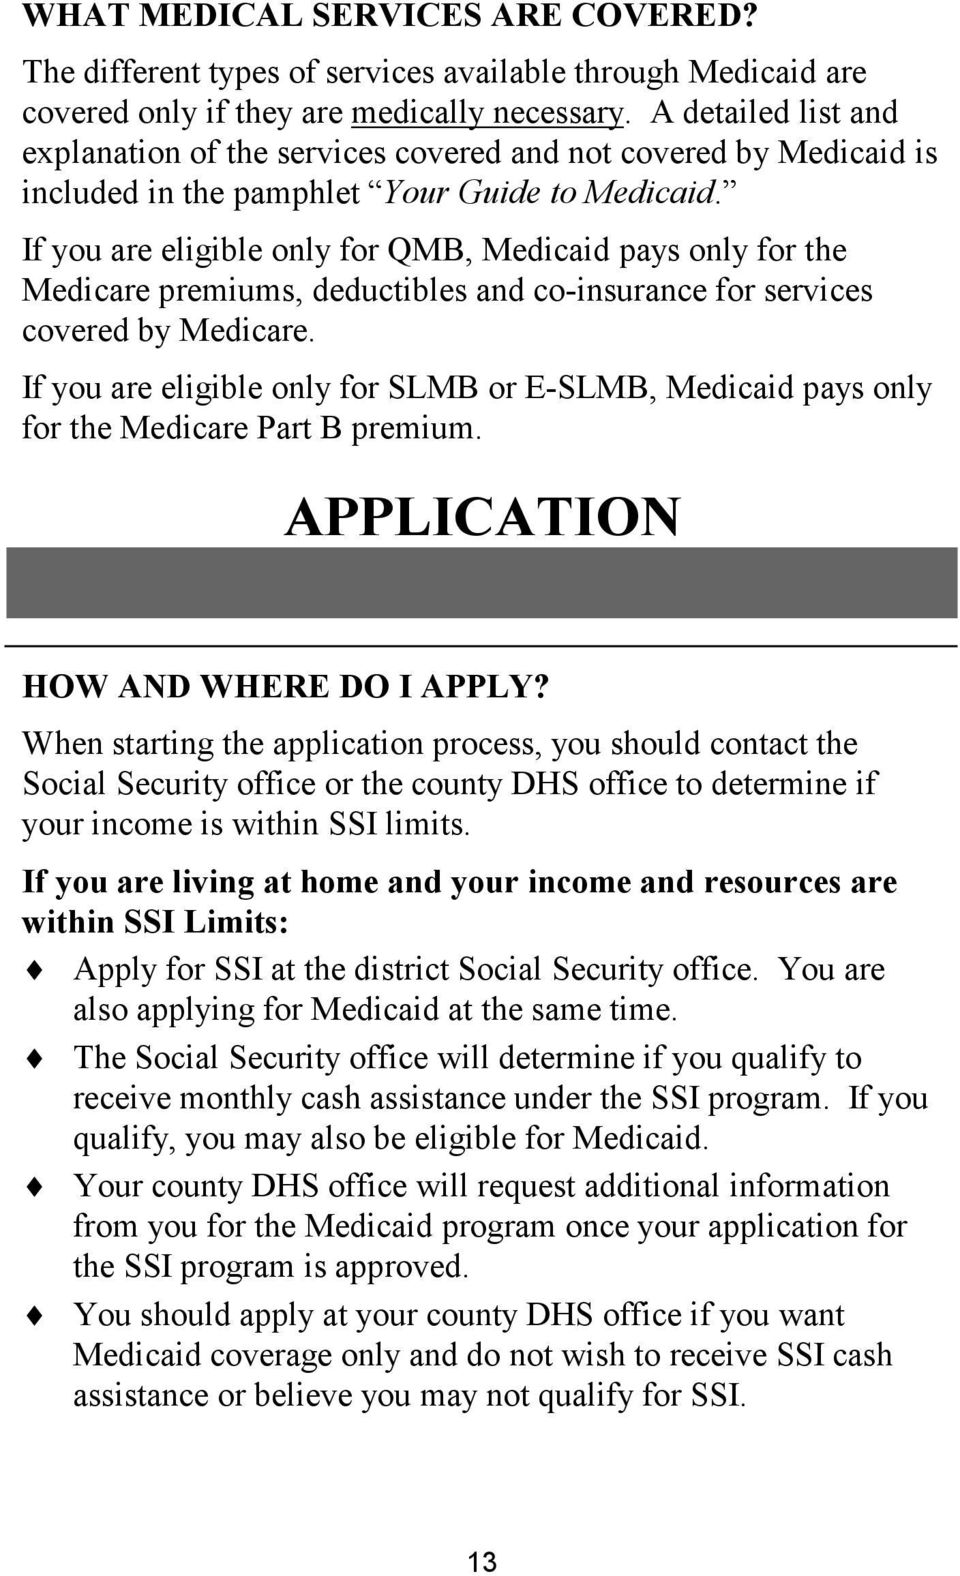 If you are eligible only for QMB, Medicaid pays only for the Medicare premiums, deductibles and co-insurance for services covered by Medicare.